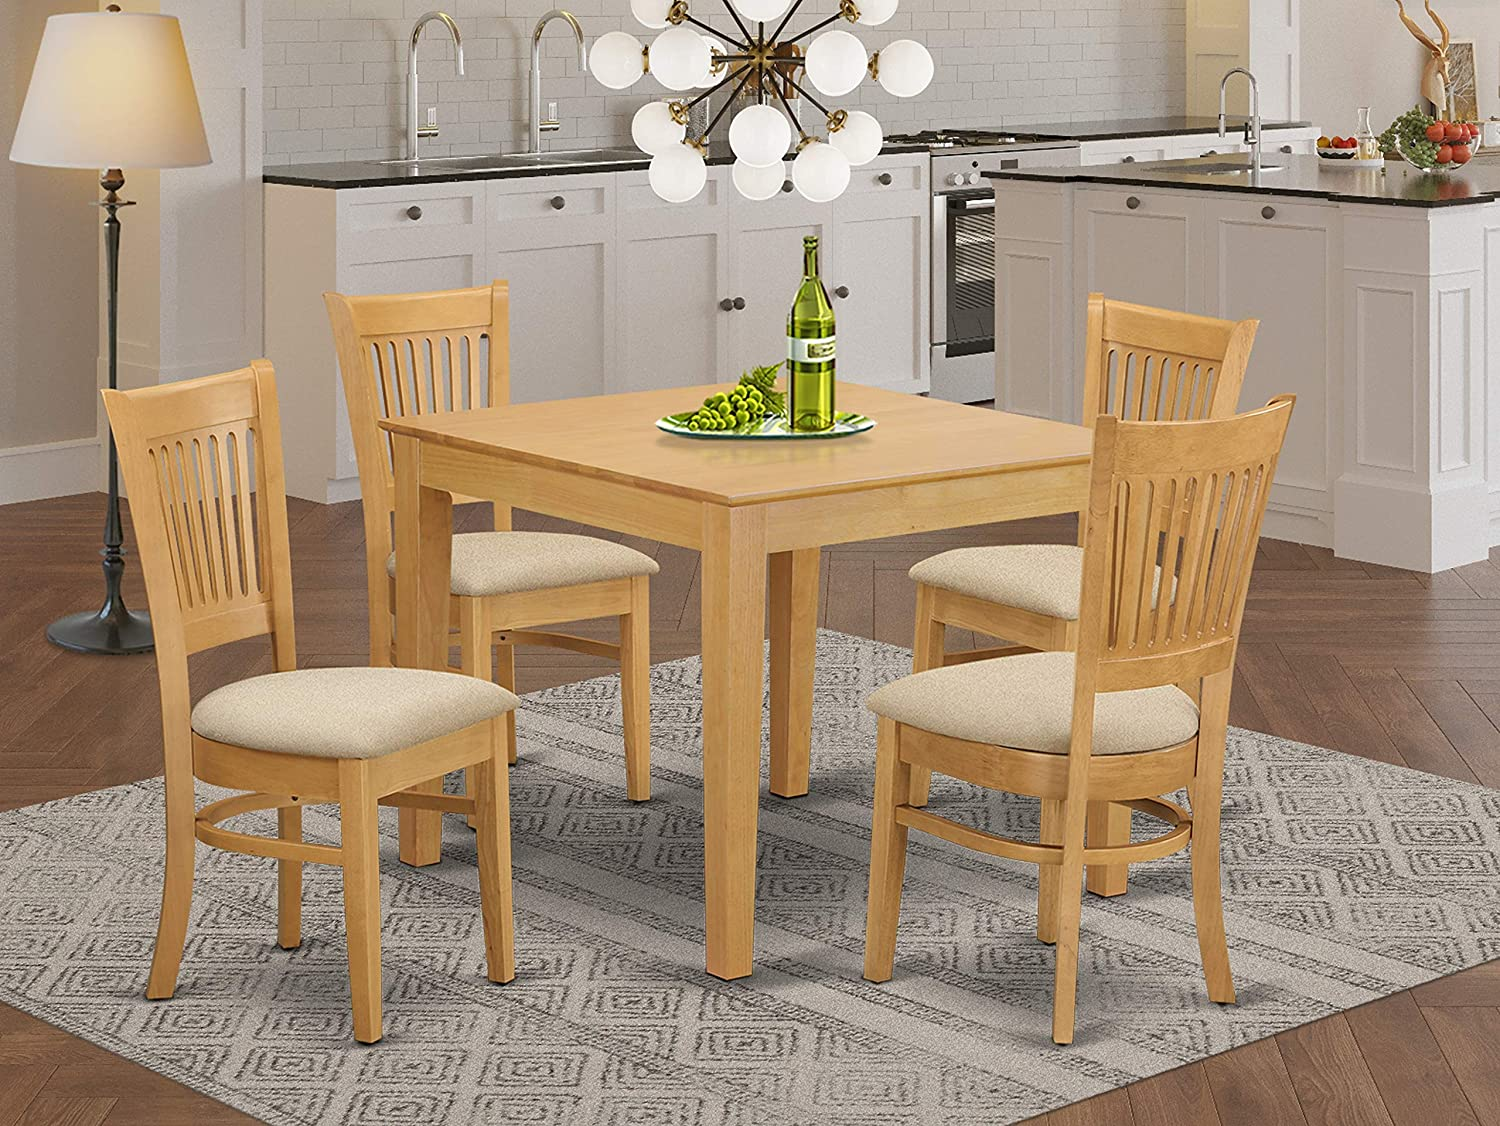 9 PC Table and Chairs set - Kitchen Table and 9 Dining Chairs